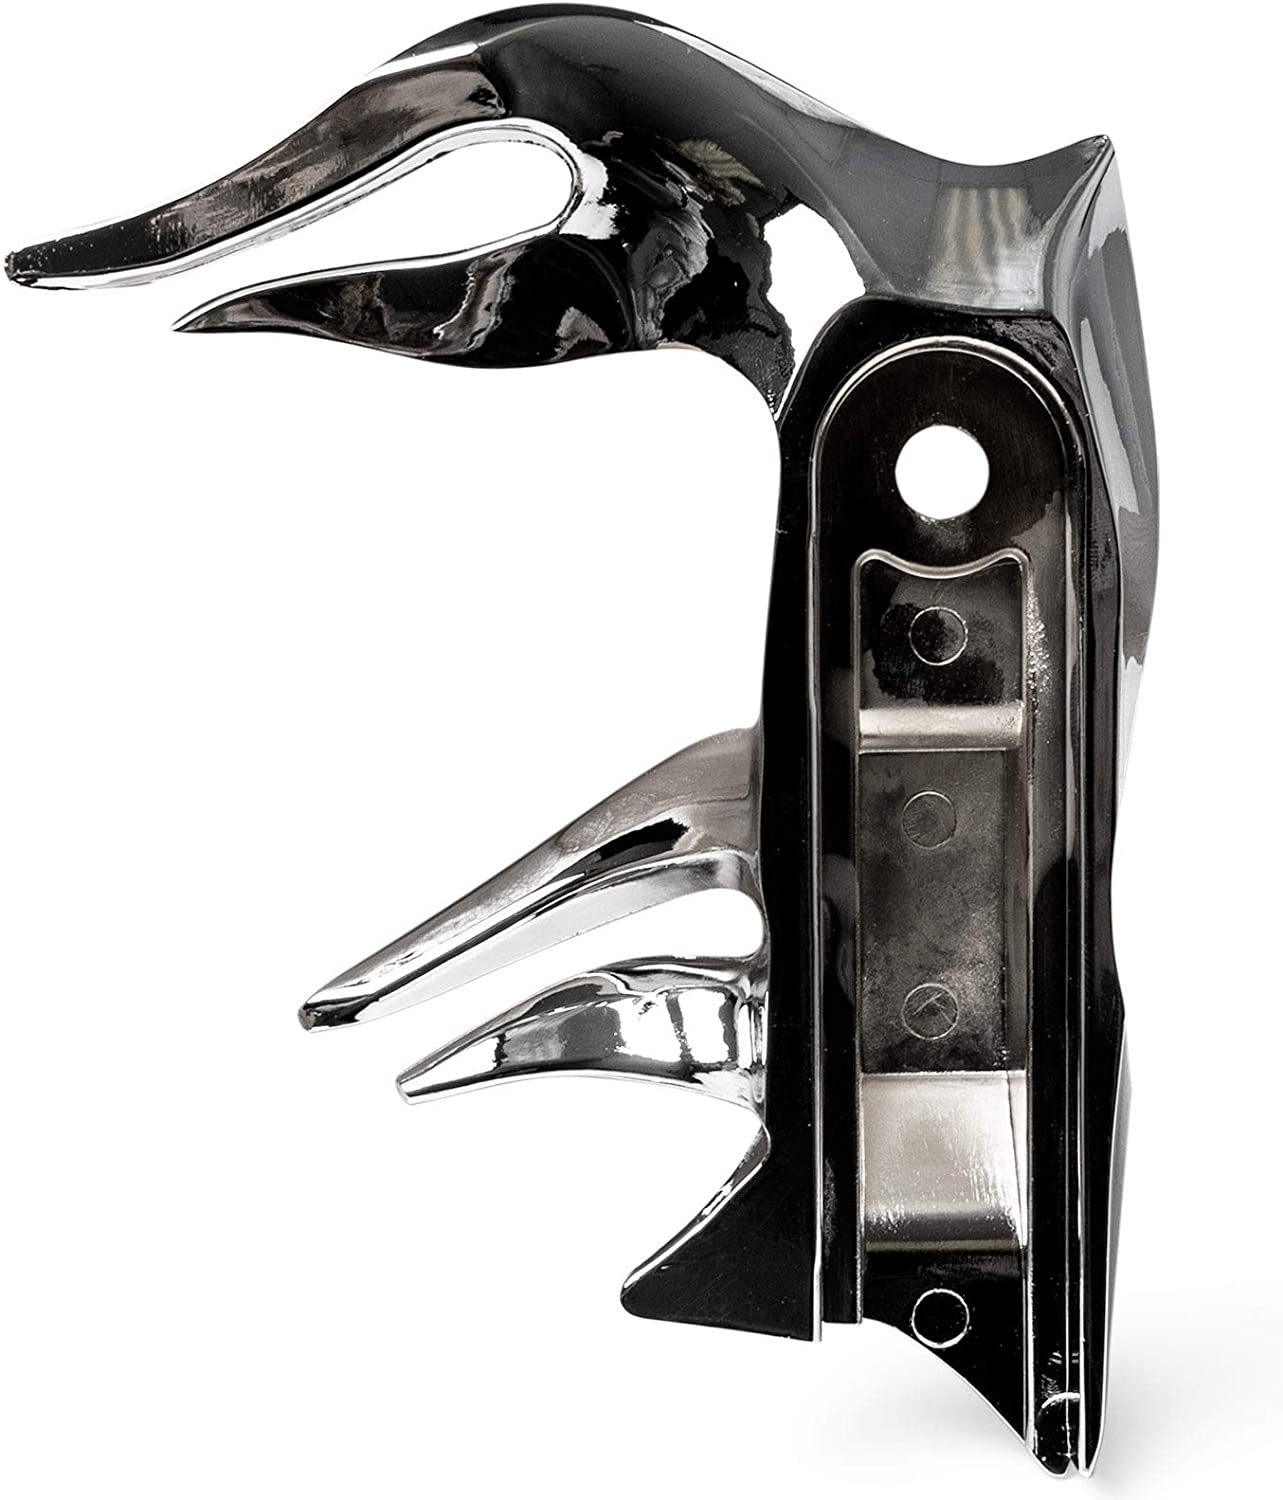 Krator NEW Chrome Flame Shift Linkage Arm Cover for 1982-2016 Harley Davidson Electra Glides